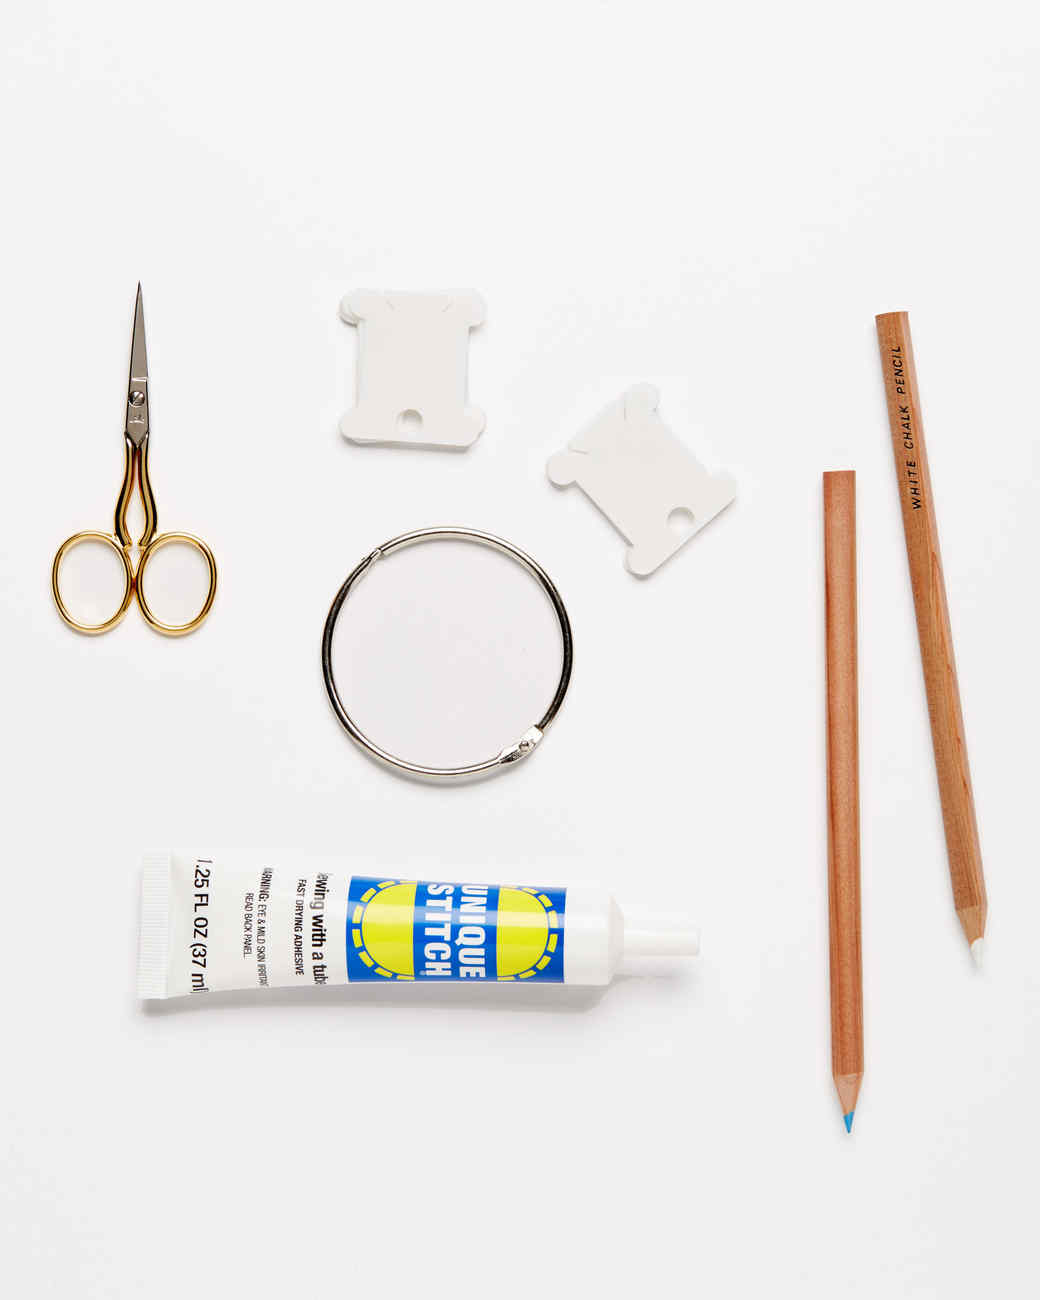 The Most Essential Embroidery Tools and Materials